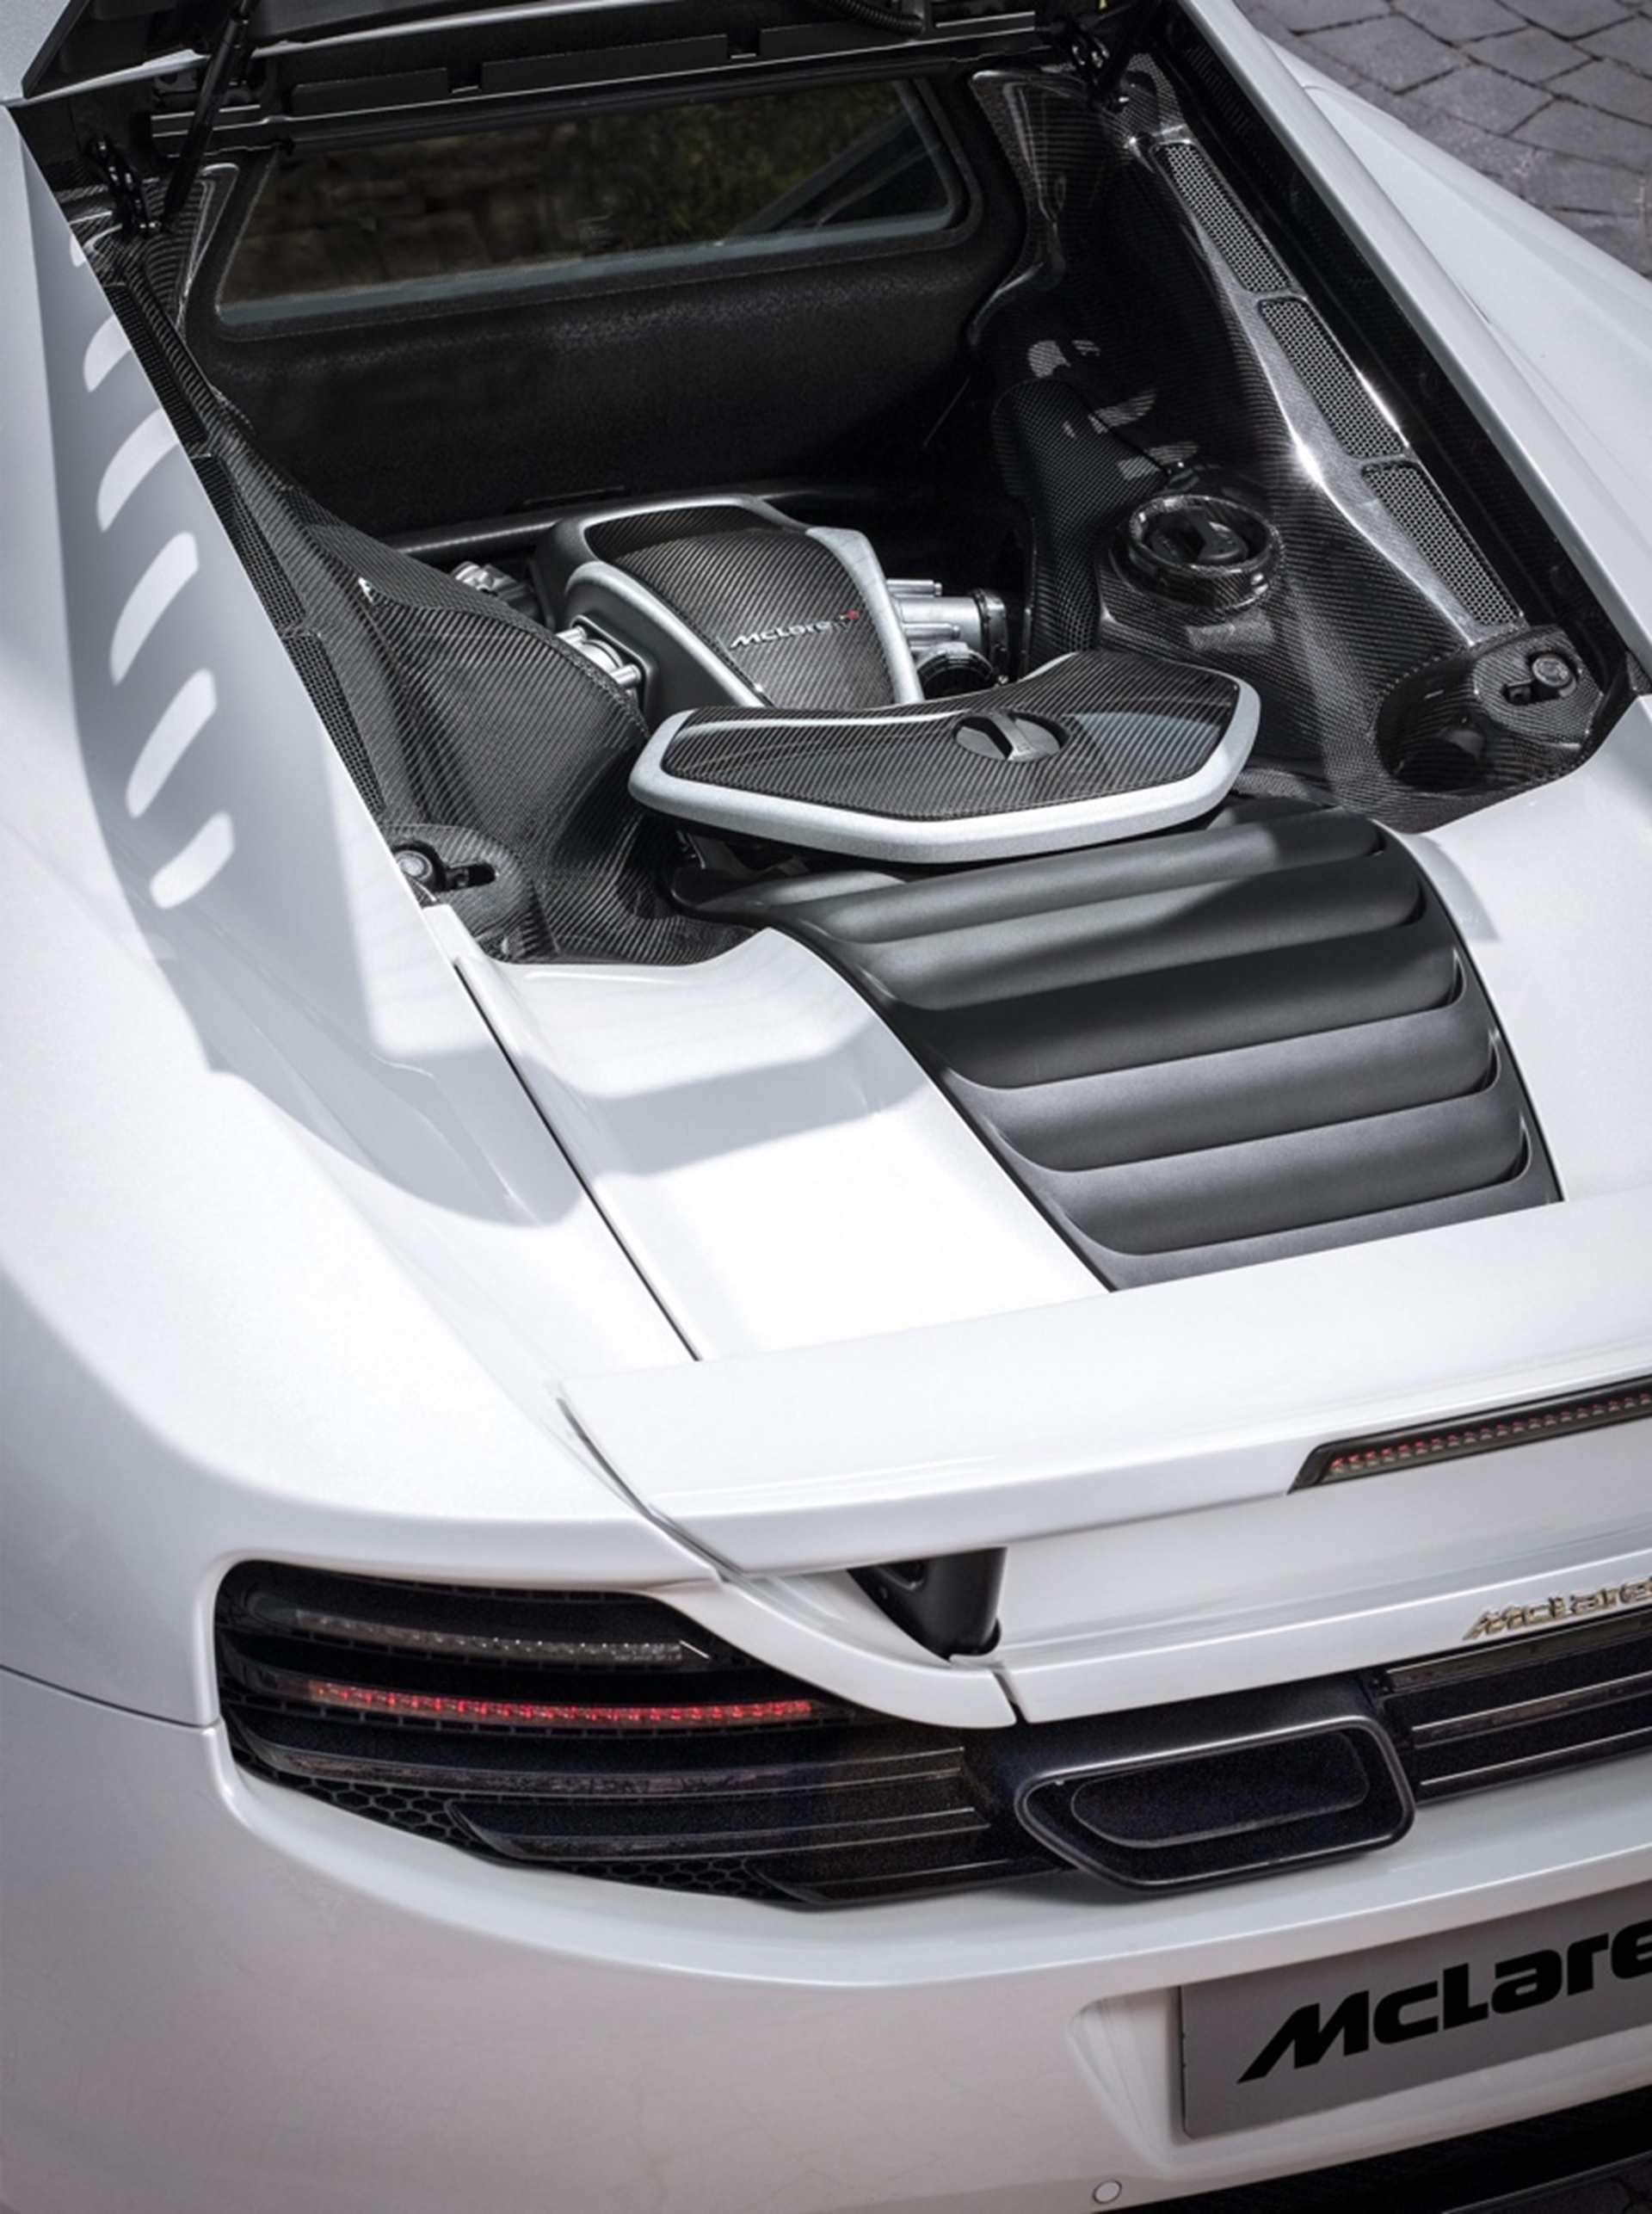 McLaren MP4-12C engine